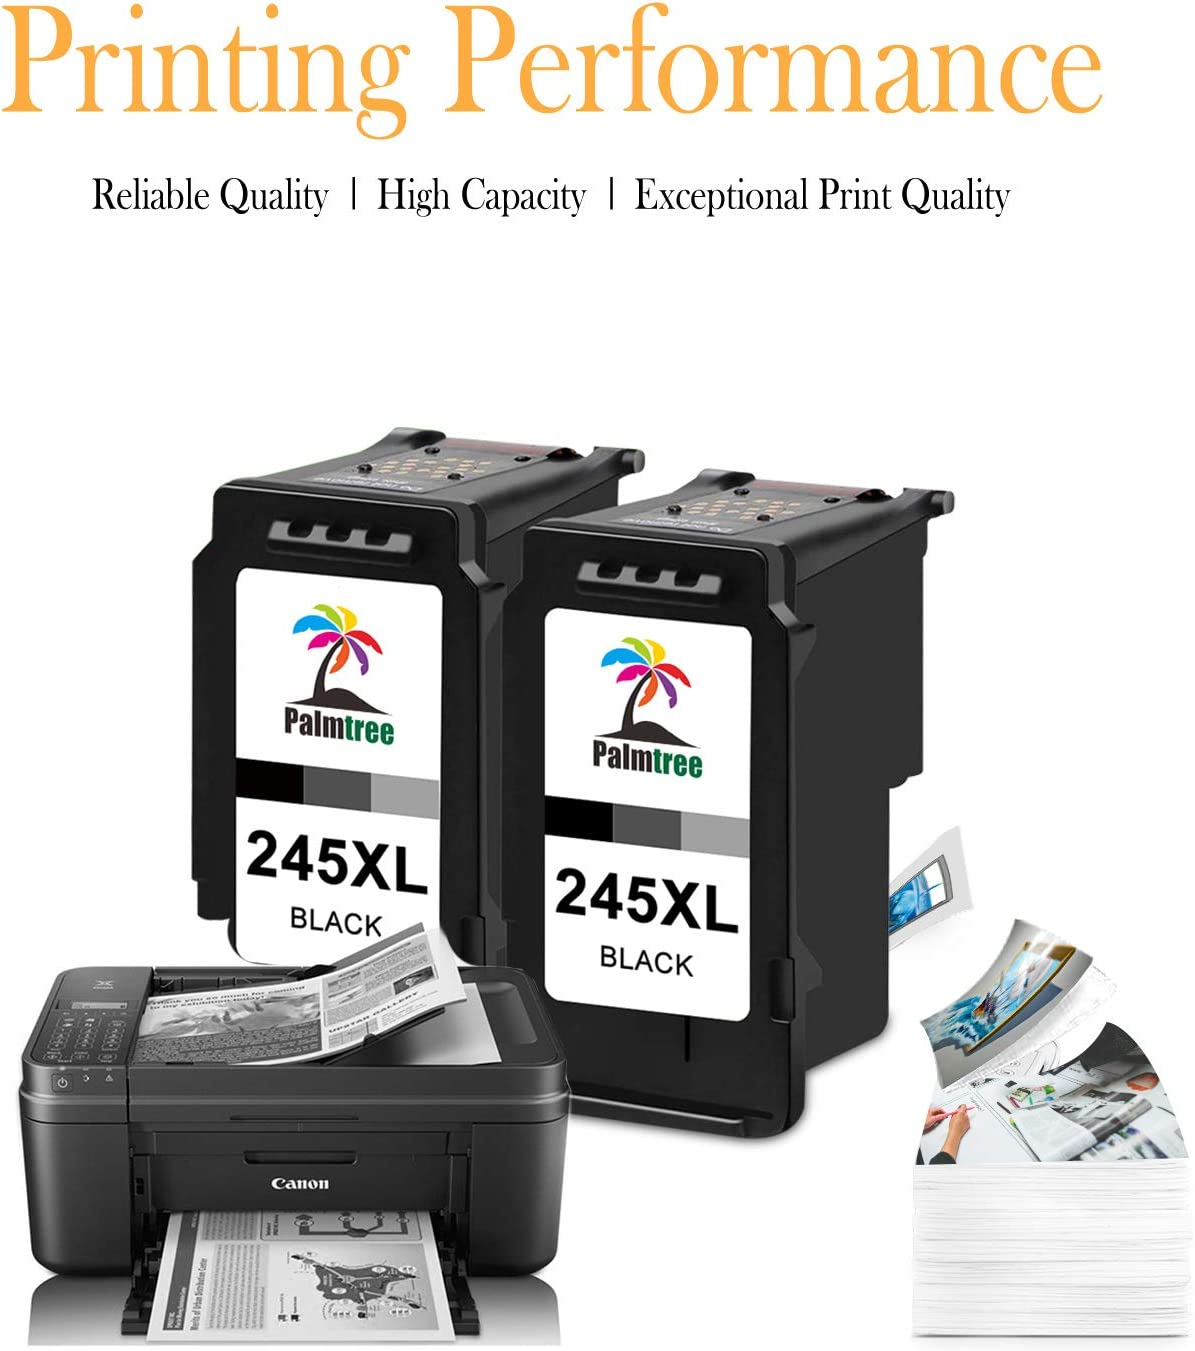 Palmtree Remanufactured 245XL Black Ink Cartridge Replacement for Canon PG-245 PG-245XL PG 245 245XL 245 XL Used in Canon PIXMA MX492 MX490 MG2920 MG2420 MG2520 MG2522 IP2820 2 Black